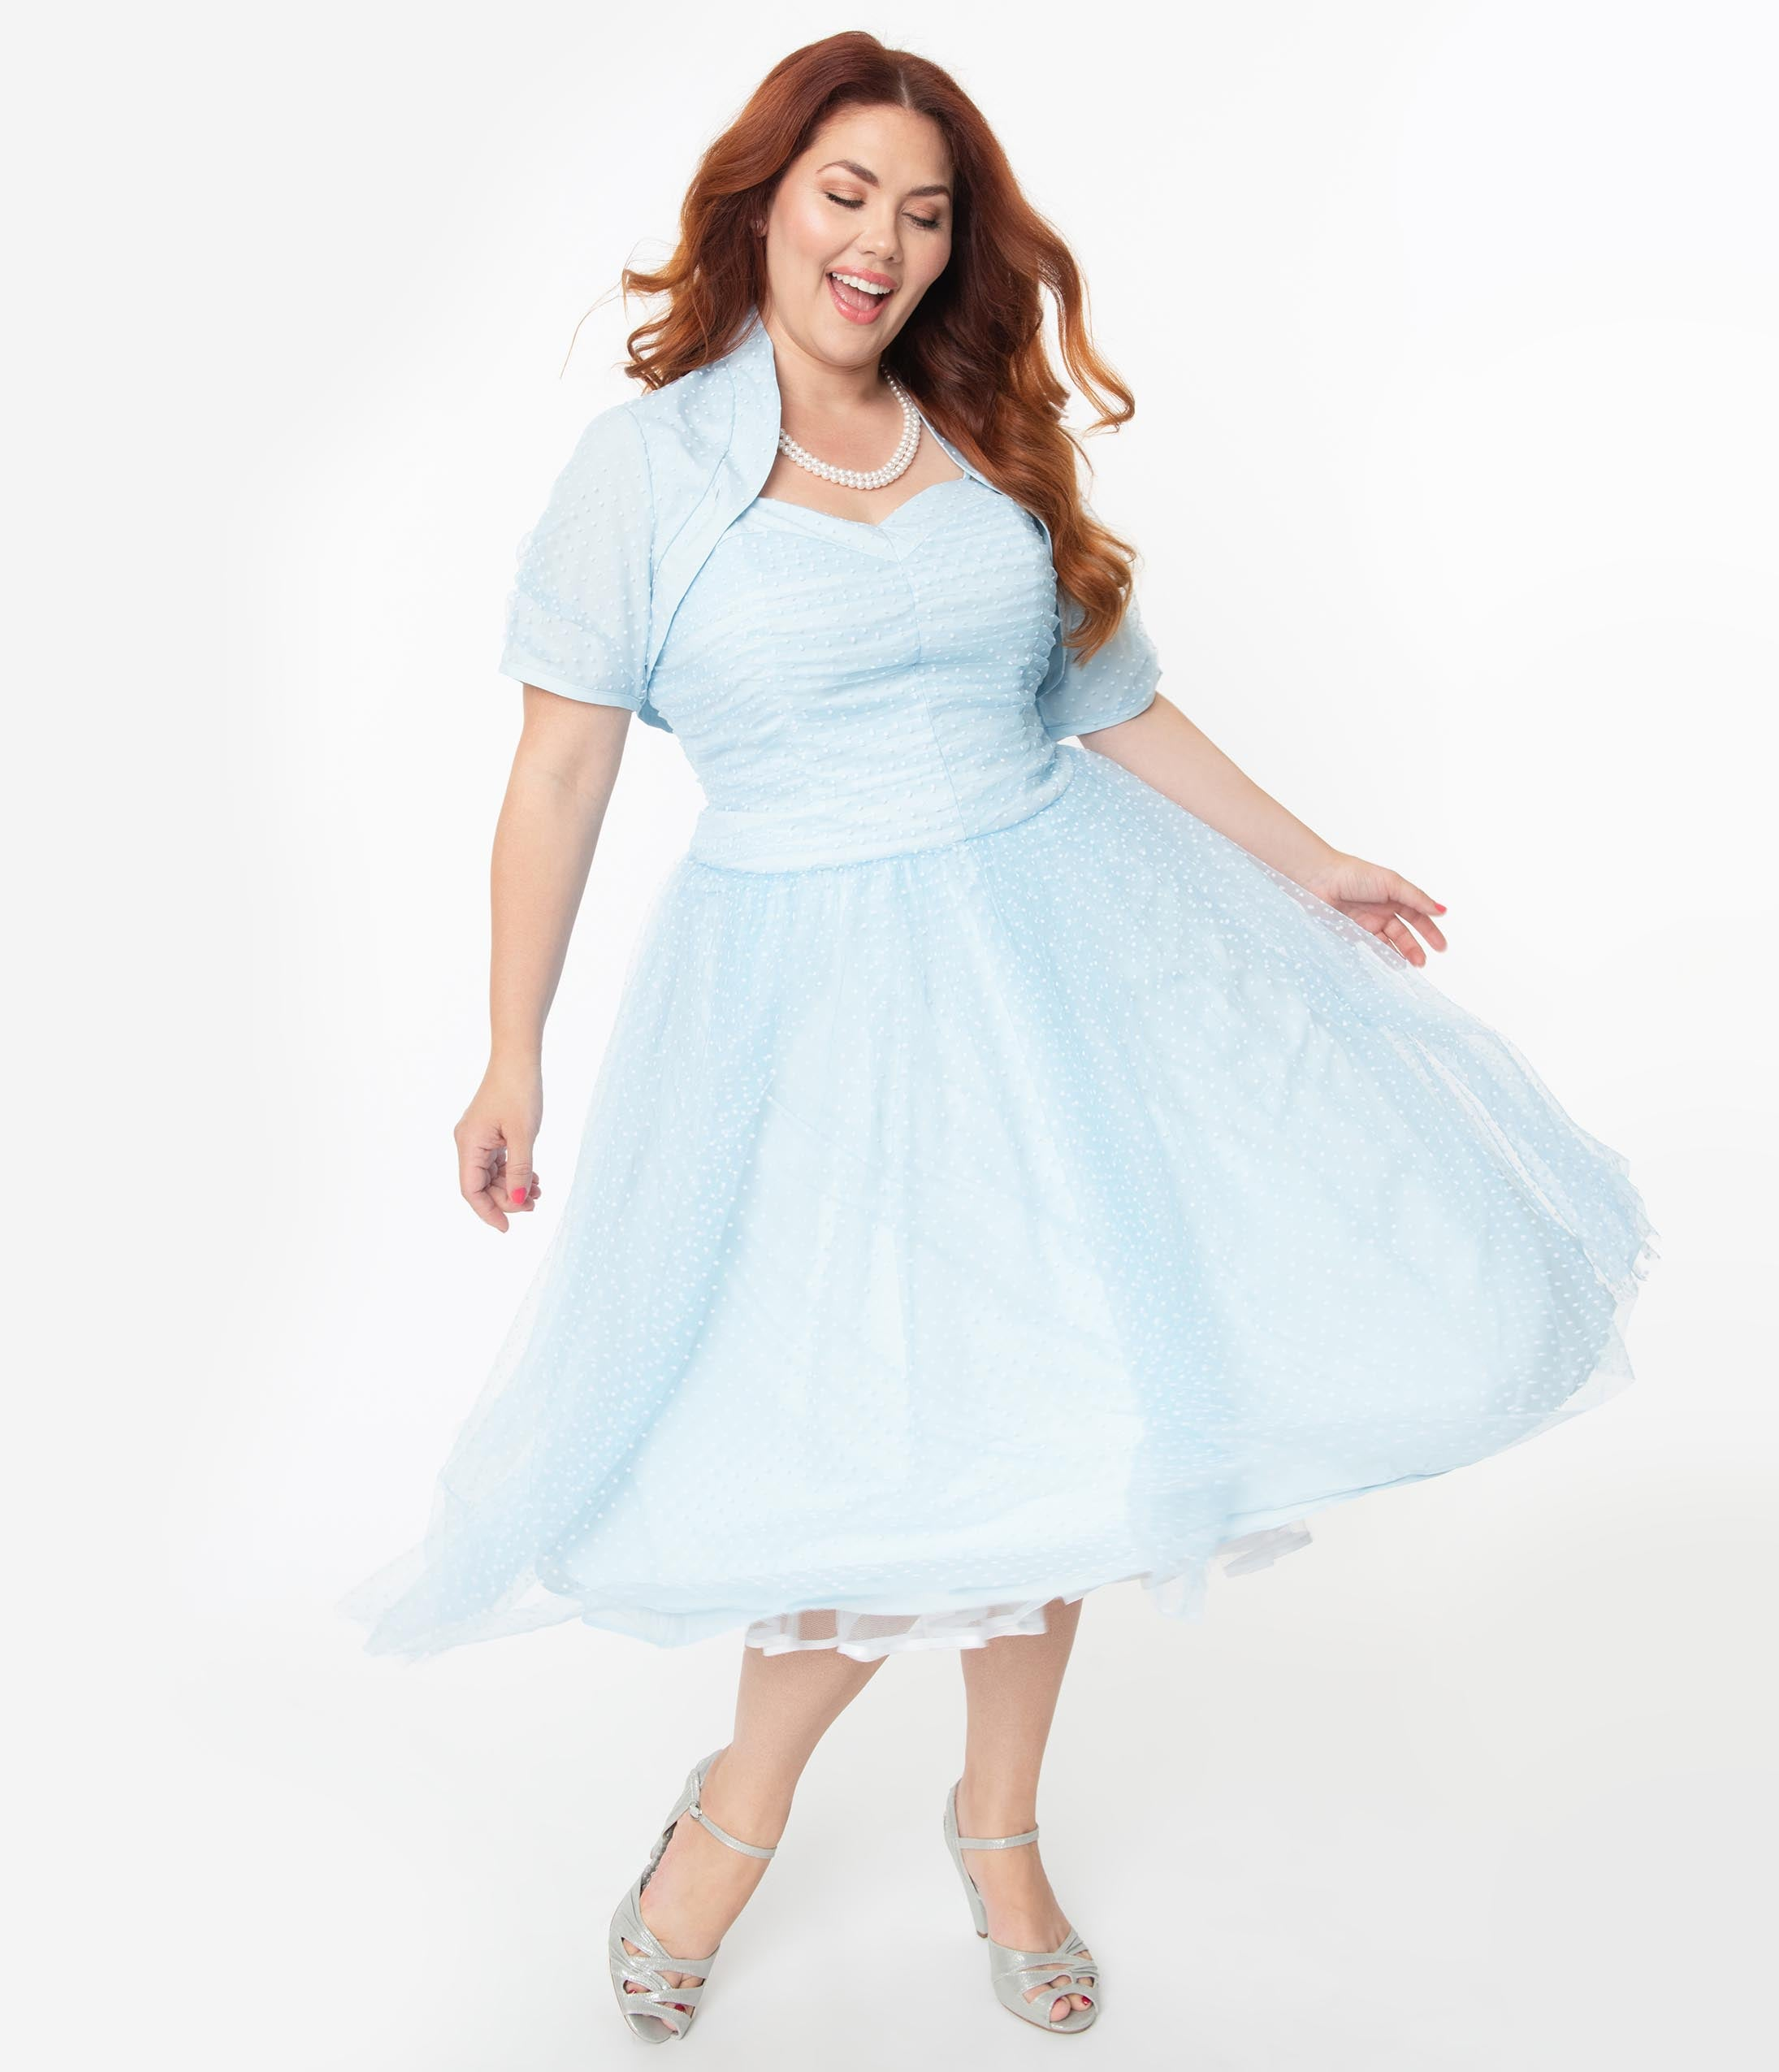 1950s Plus Size Dresses, Swing Dresses I Love Lucy X Unique Vintage Plus Size Light Blue Honeymoon Swing Dress $148.00 AT vintagedancer.com